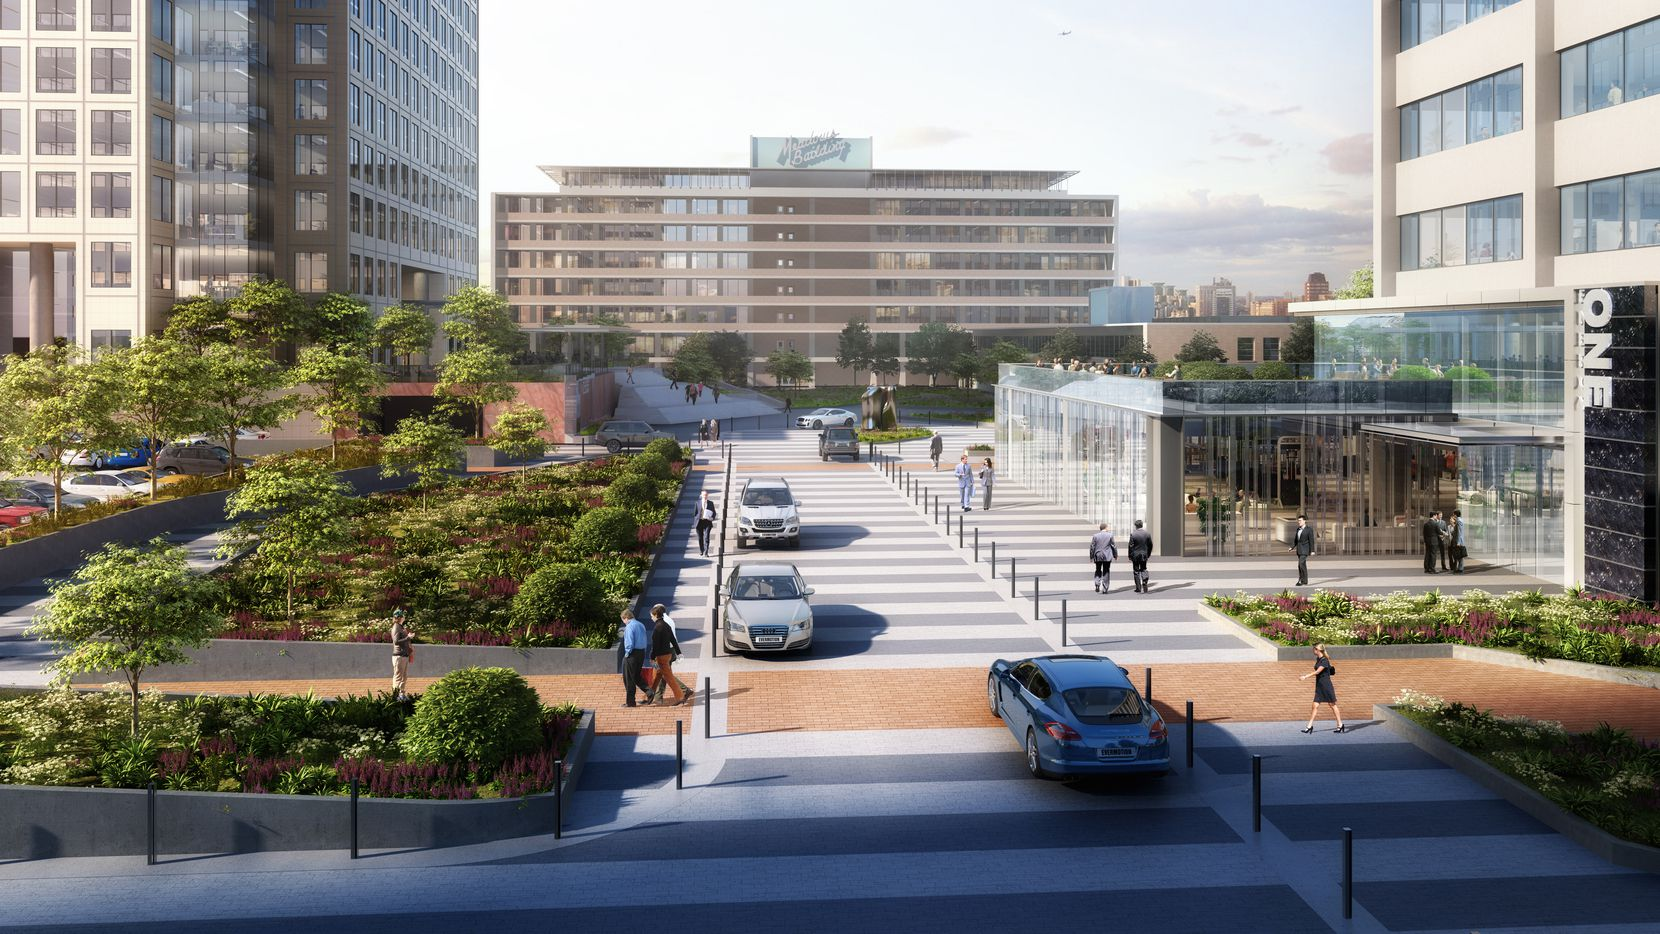 A new central boulevard and pedestrian access will link Energy Square and the historic Meadows Building.